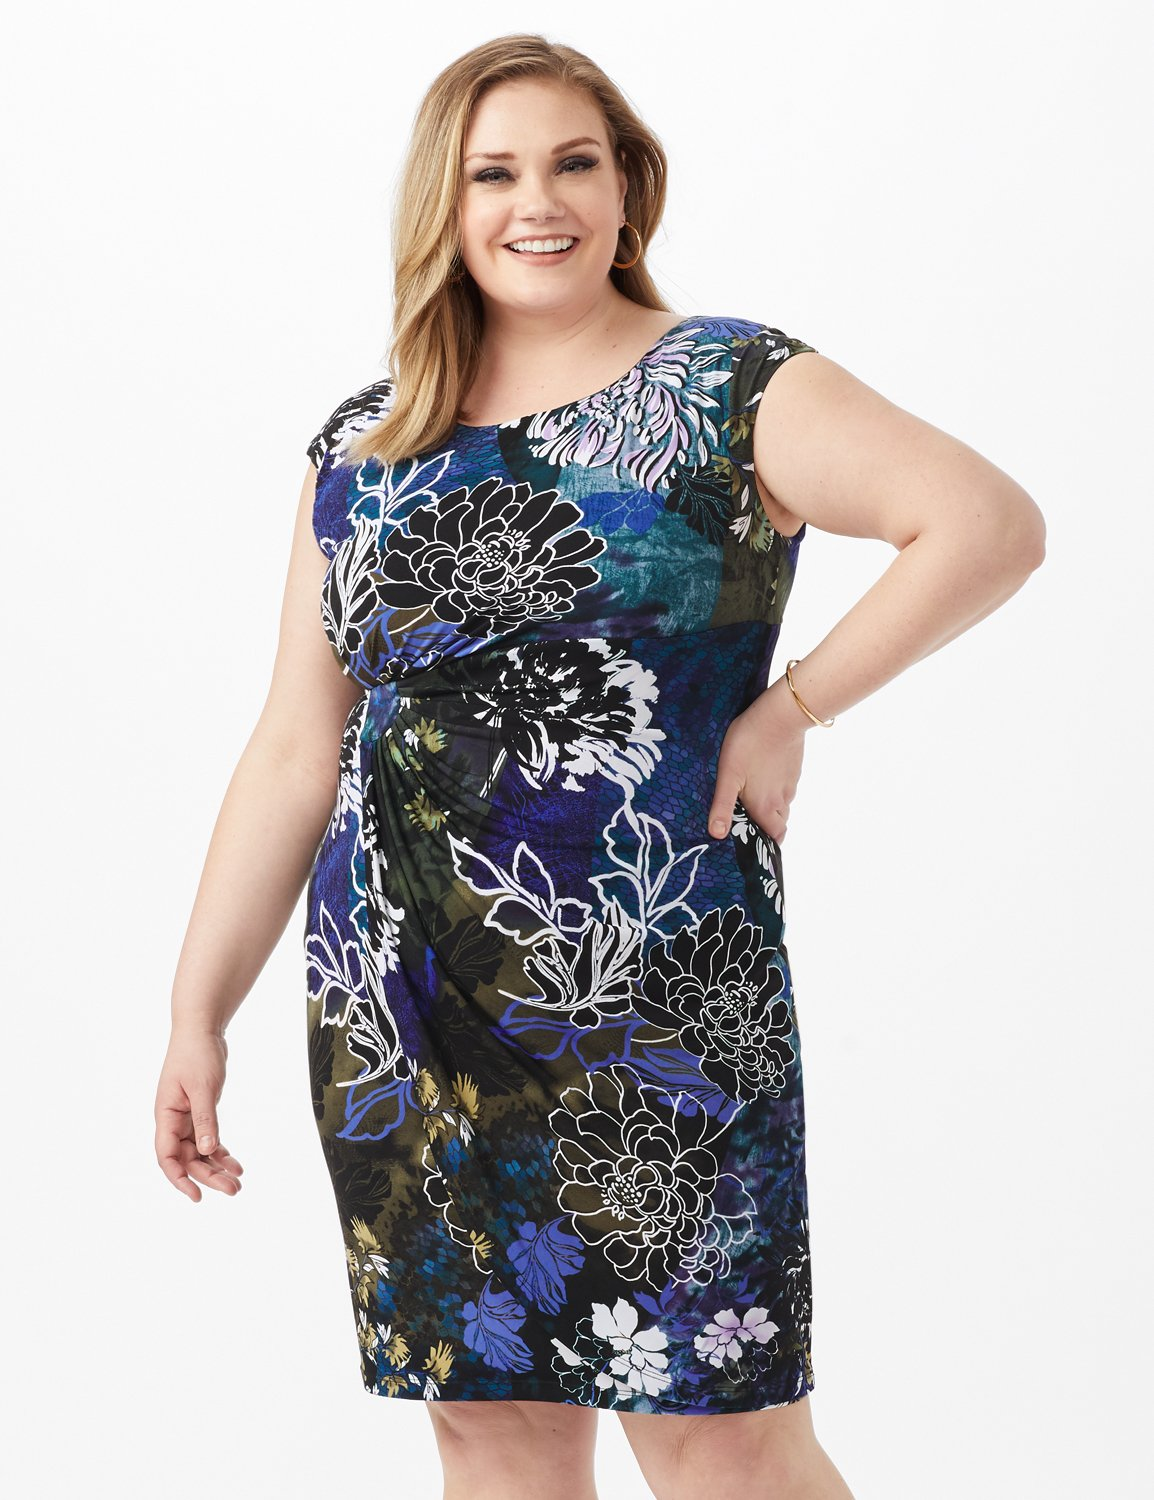 Faux Wrap Floral Print Side Rush Dress -Dark Periwinkle - Front